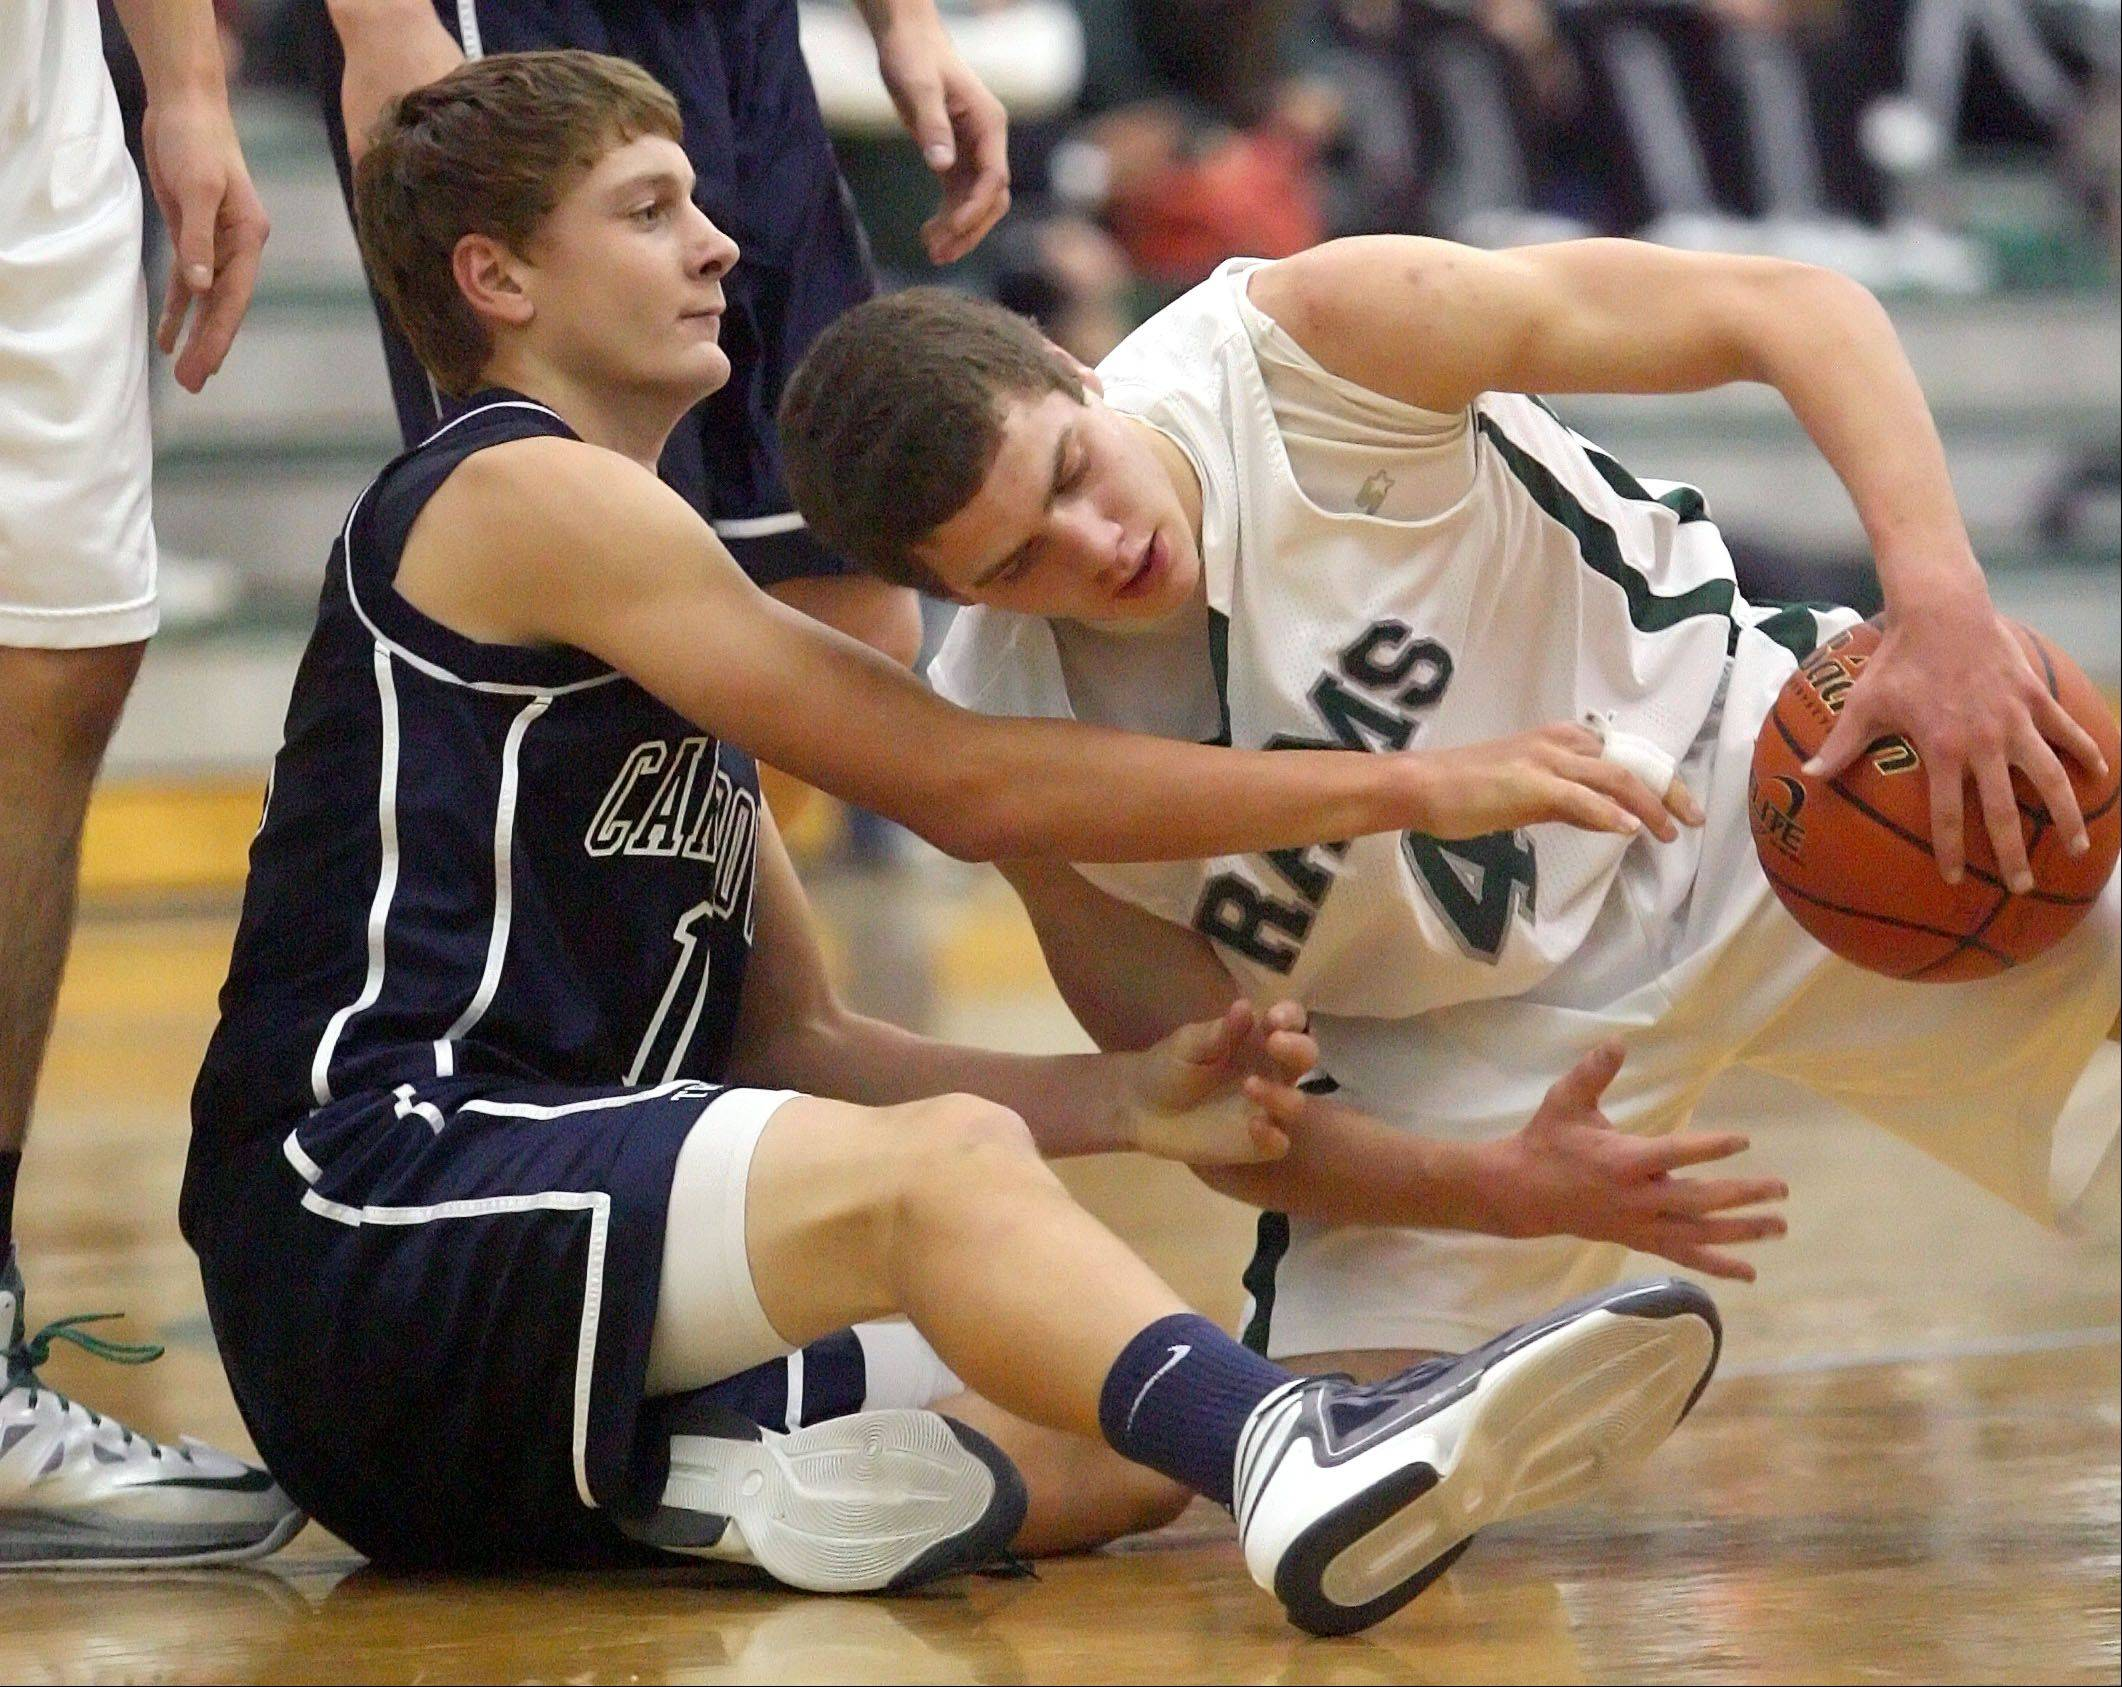 Cary-Grove's Jason Gregoire, left, and Grayslake Central's Jacob Vargo during action Tuesday night at Grayslake Central.